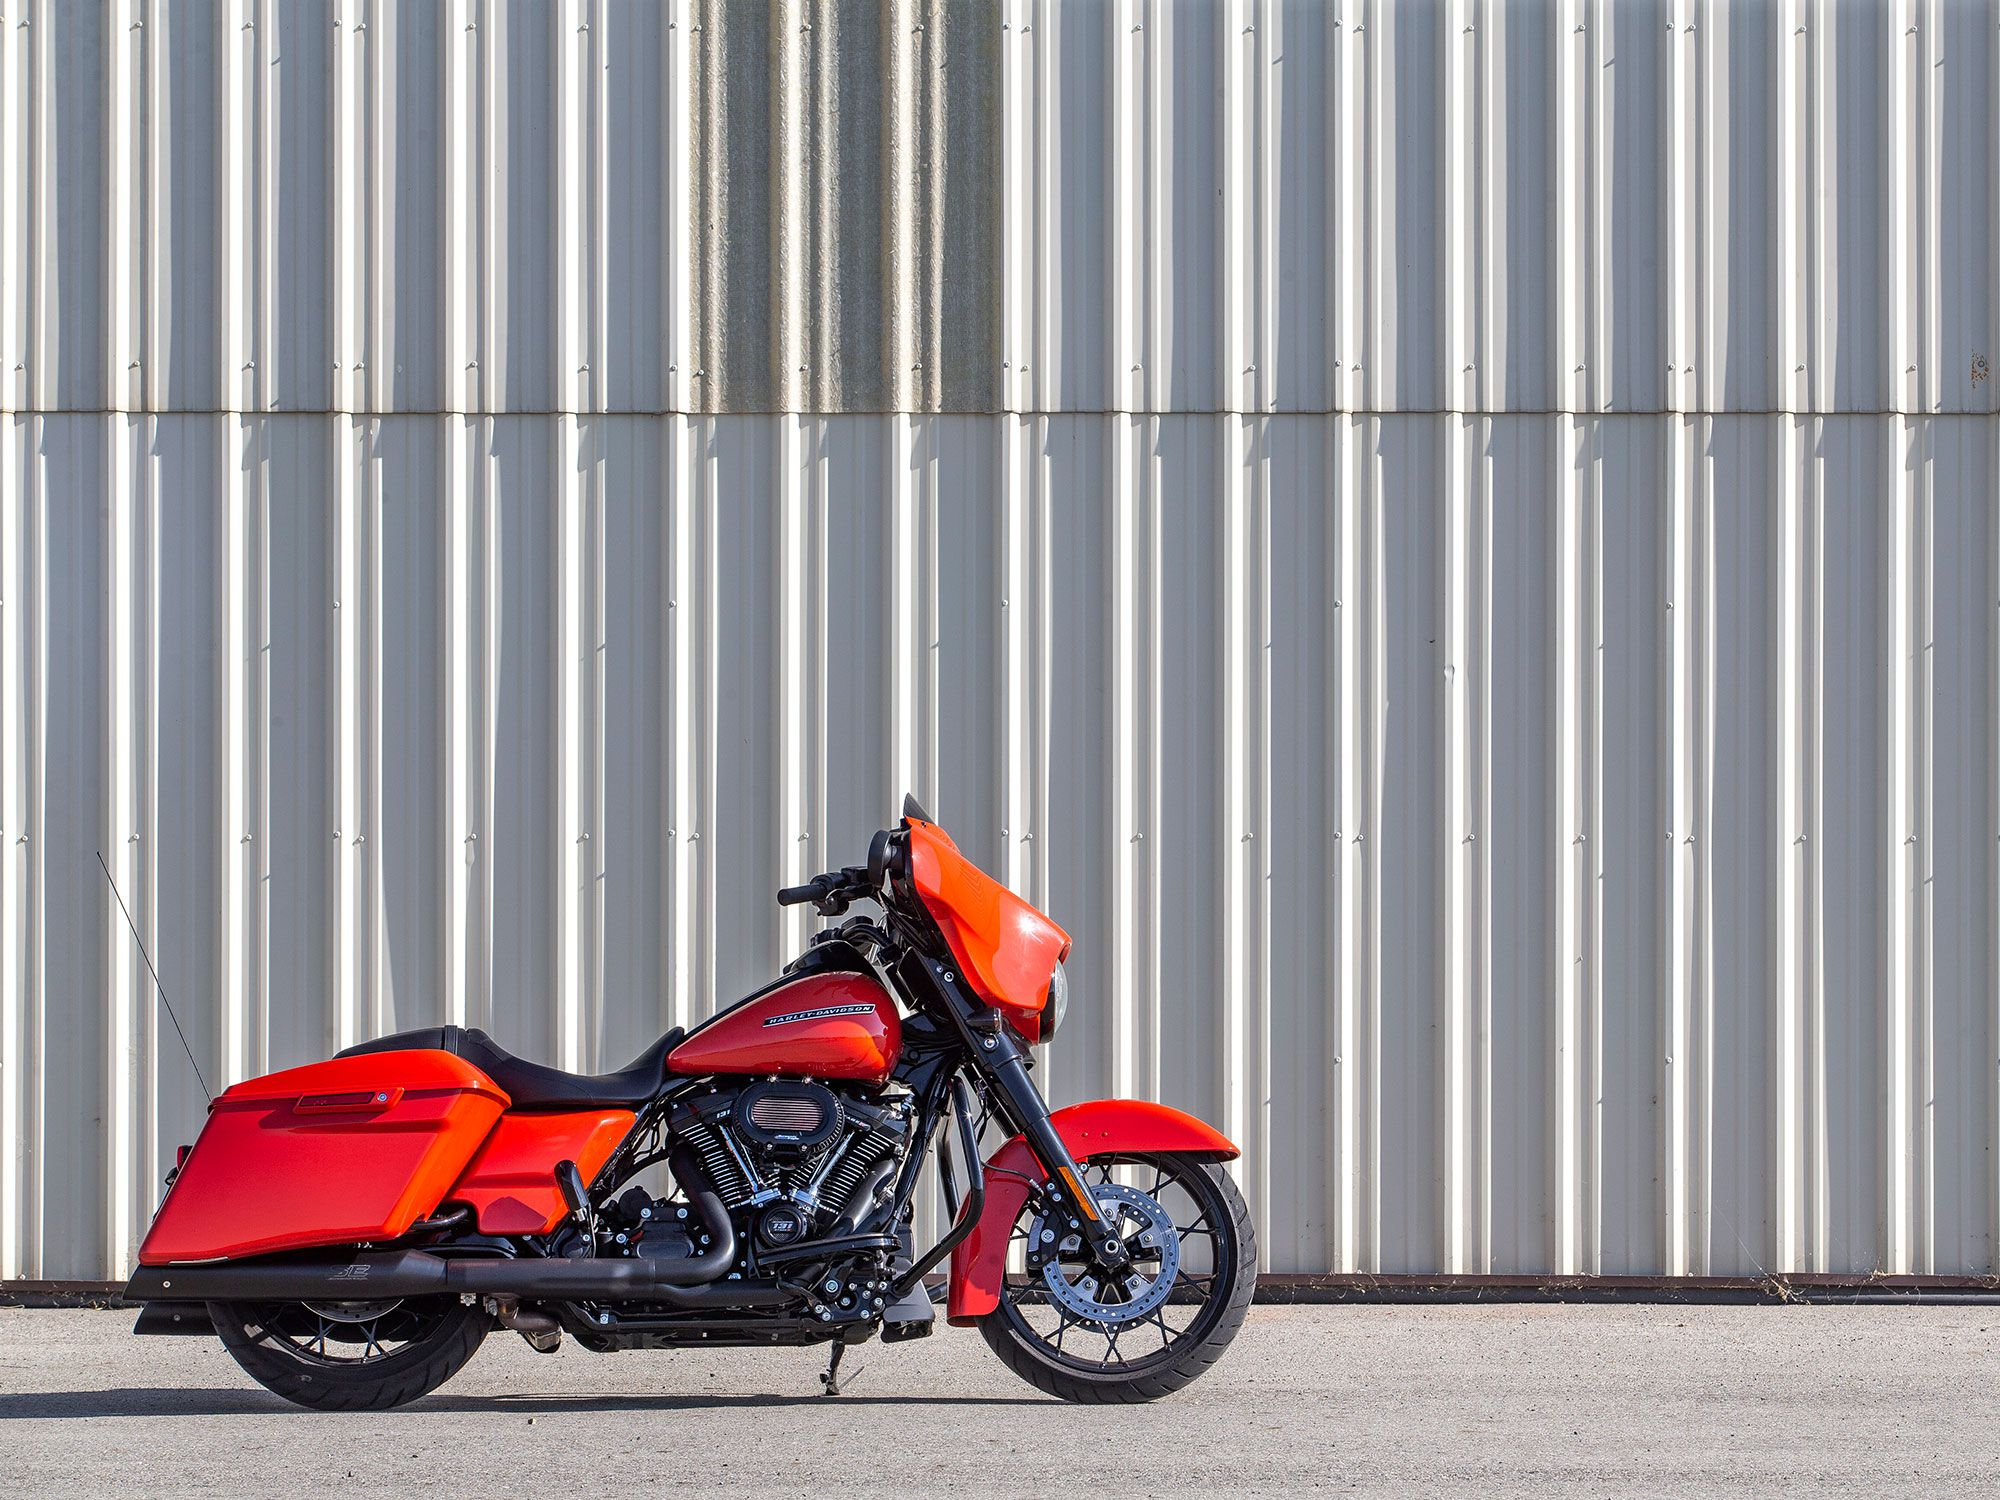 The Harley-Davidson Street Glide Special in Performance Orange retails for $28,199 with the Milwaukee-Eight 114.Jeff Allen